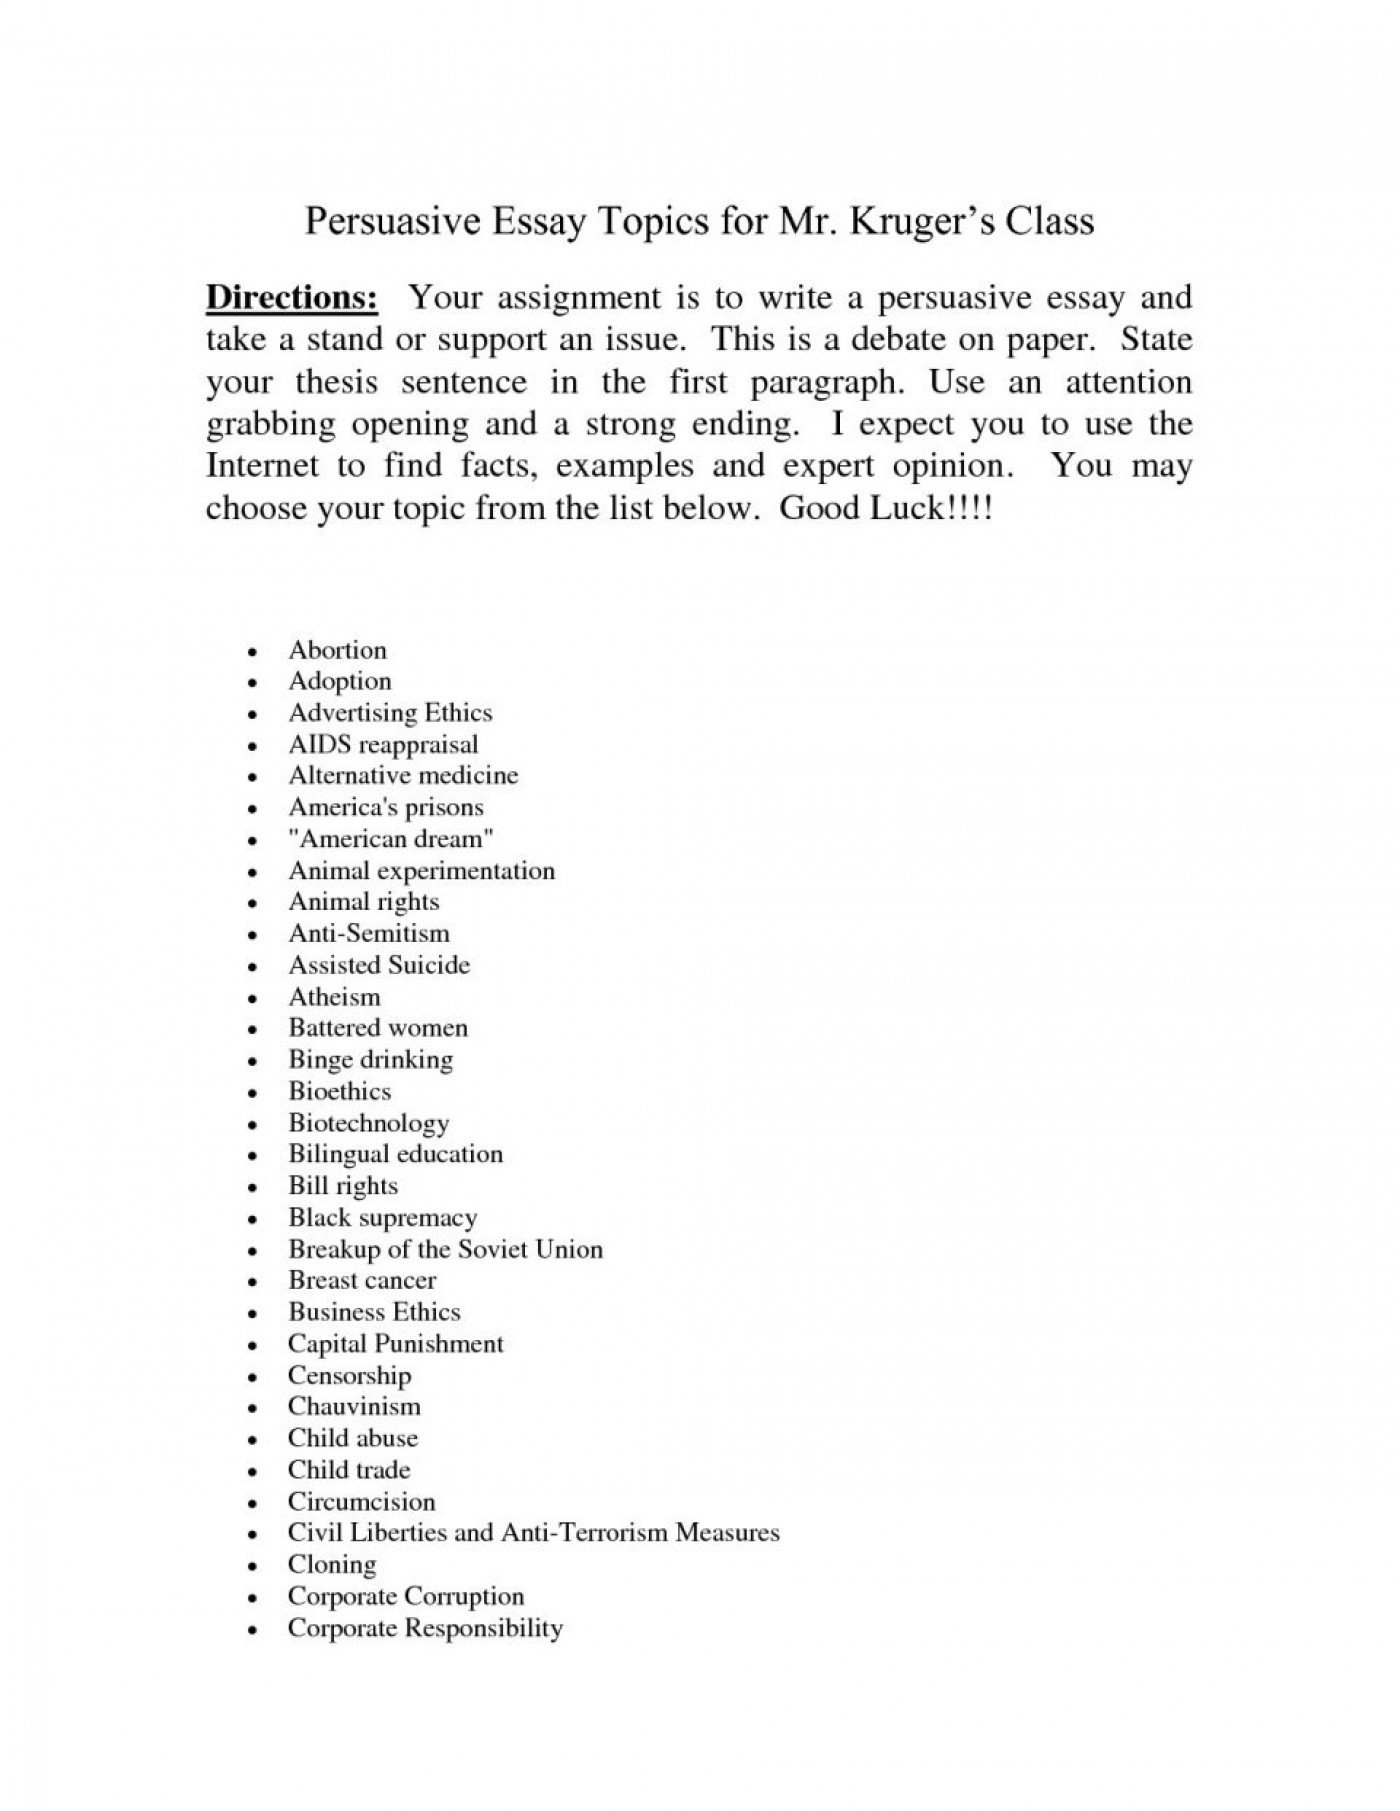 001 Research Paper Topic For Essay Barca Fontanacountryinn Within Good Persuasive Narrative Topics To Write Abo Easy About Personal Descriptive Informative Synthesis College 960x1242 Beautiful High School Students American History Business 1400